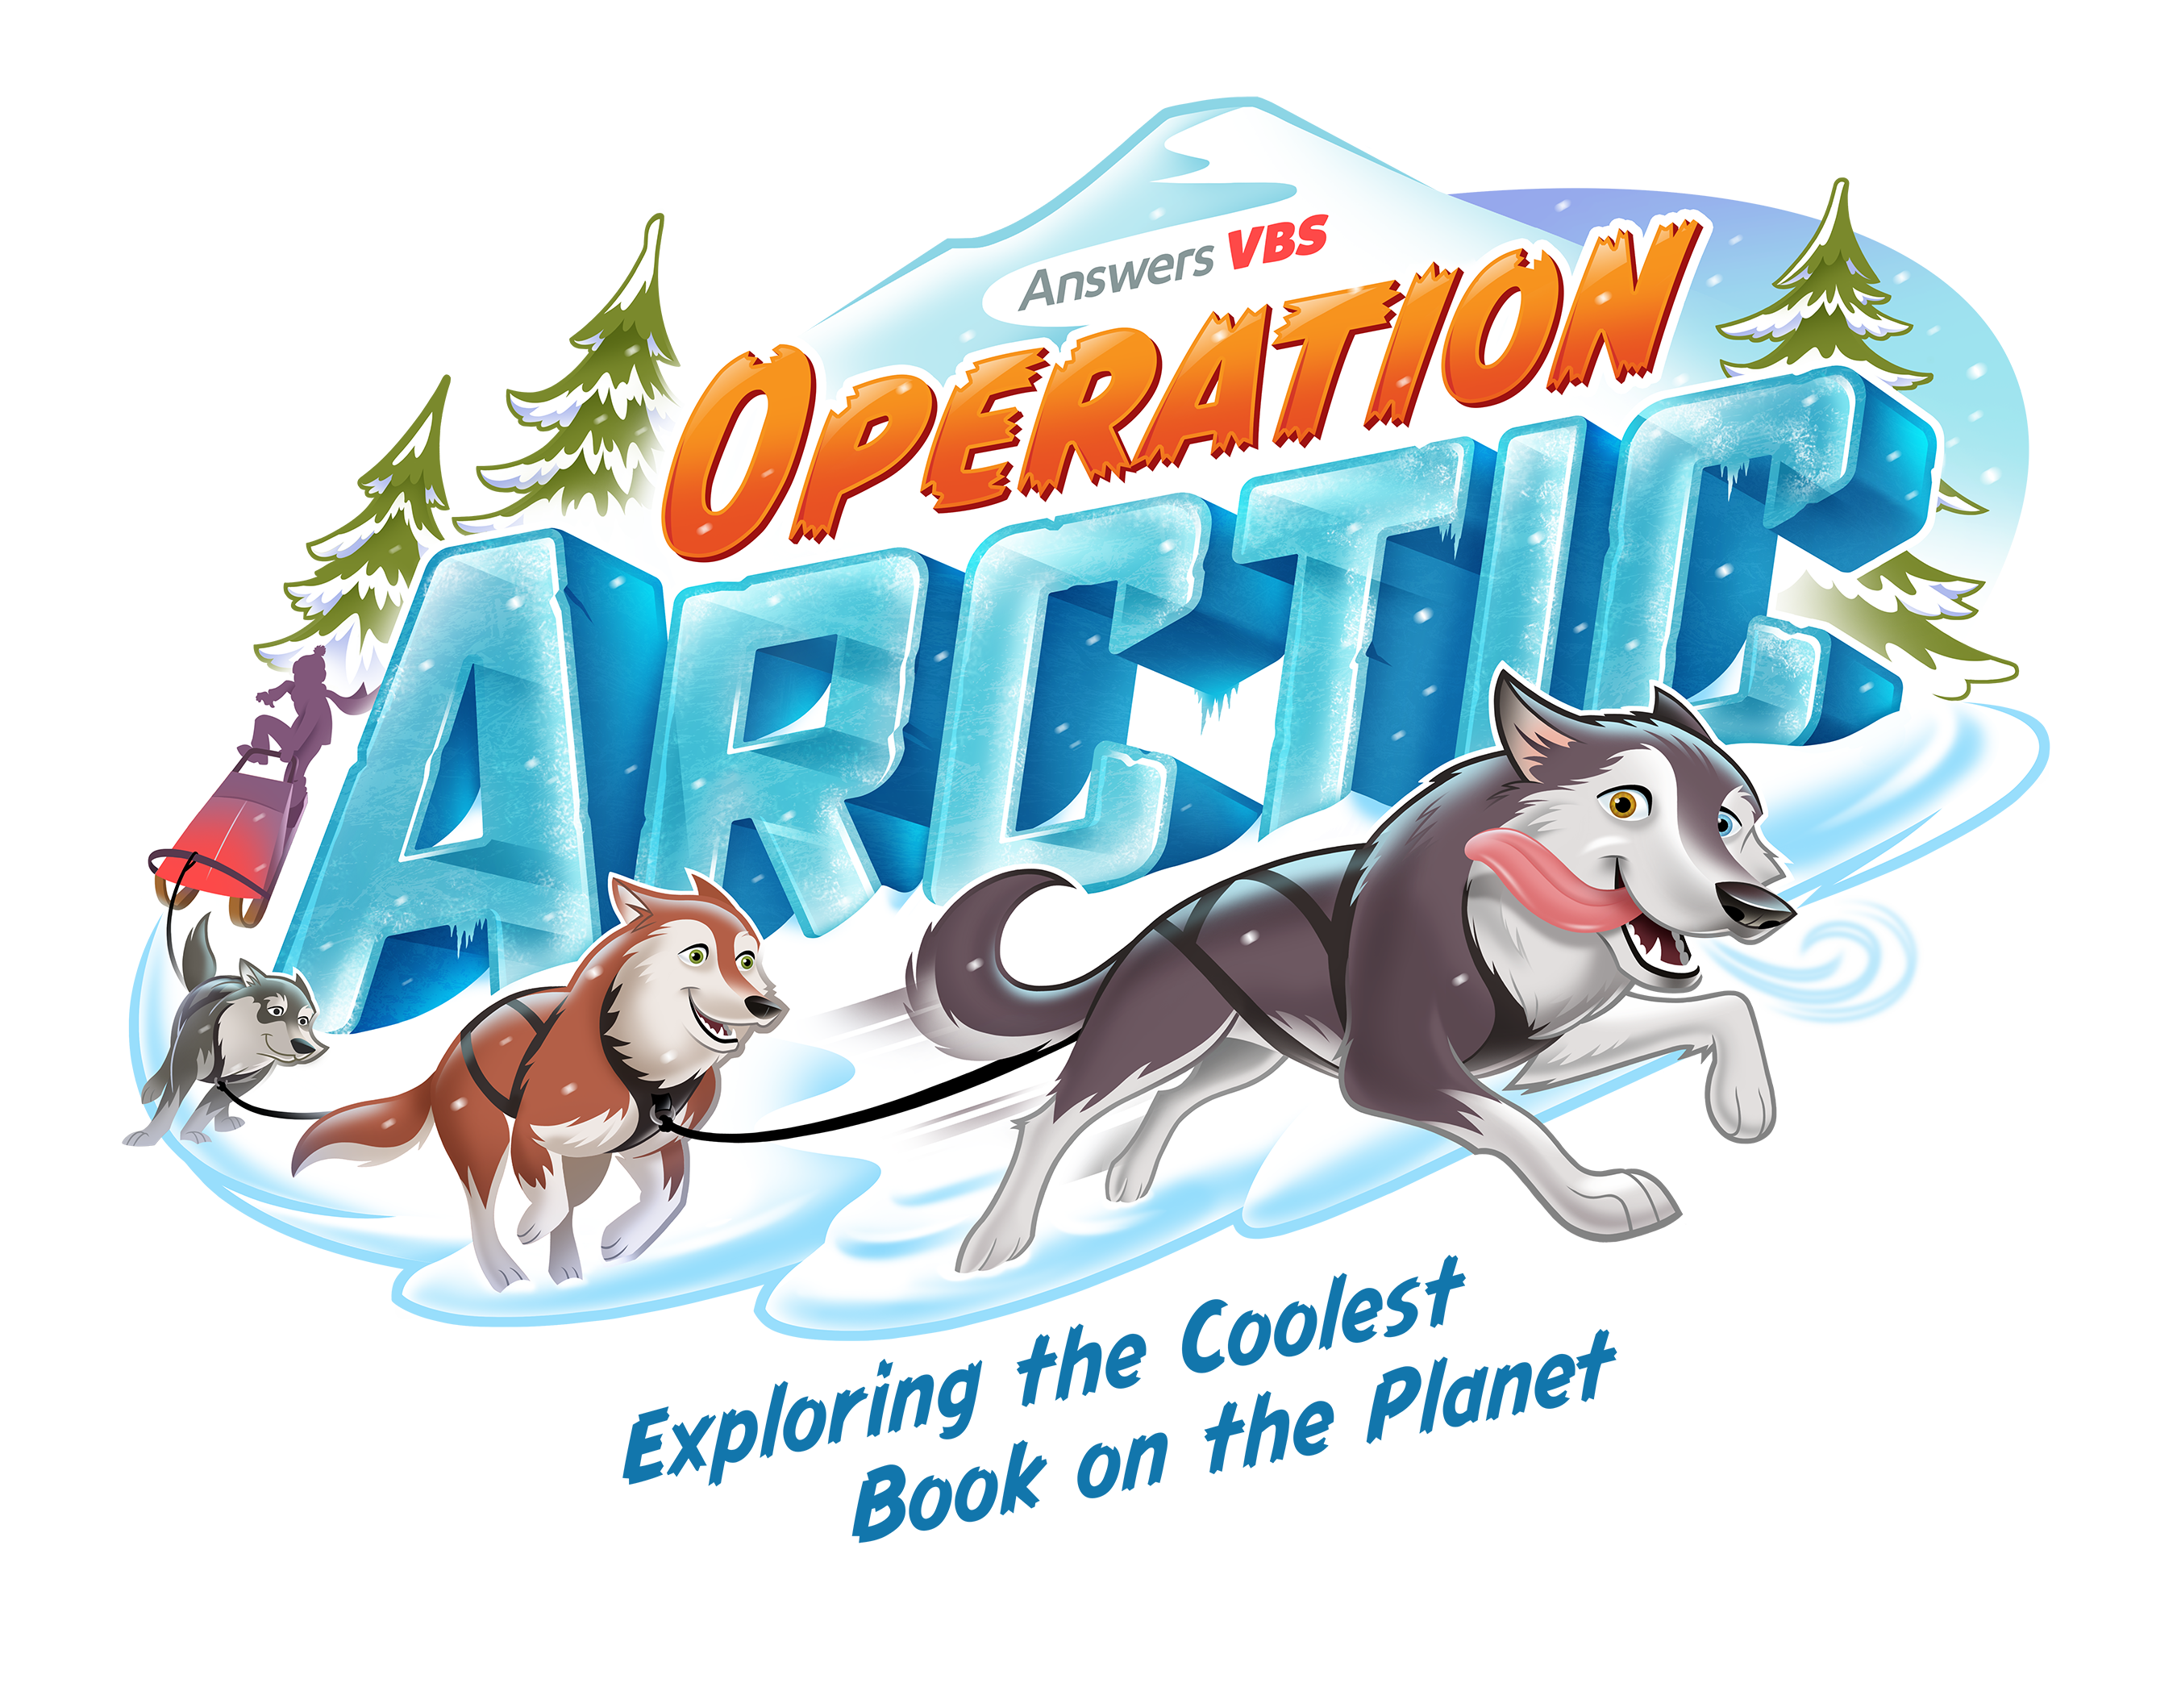 Free vacation bible school clipart jpg royalty free download Operation Arctic Resources | Answers VBS 2017 jpg royalty free download